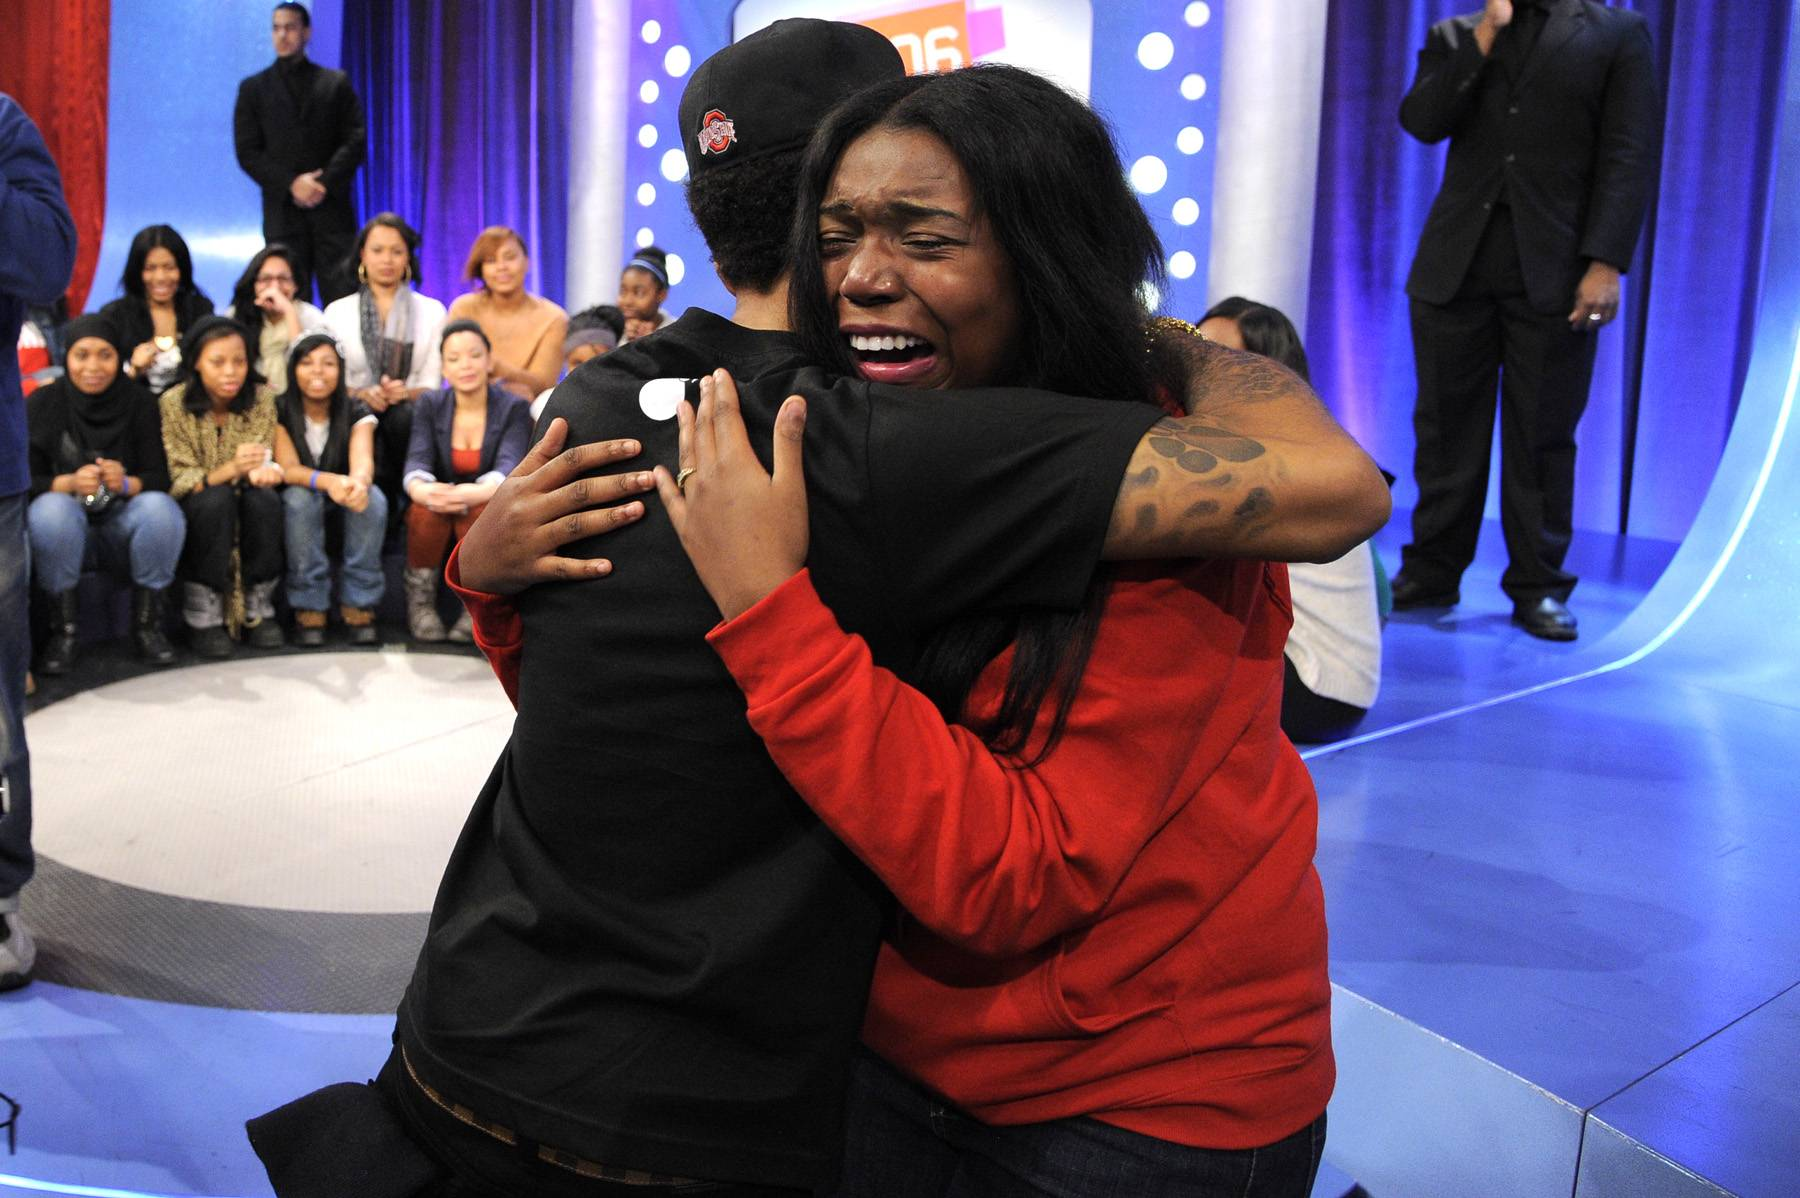 Cry for You\r - Bow Wow greets an excited fan at 106 & Park, January 23, 2012. (Photo: John Ricard / BET)